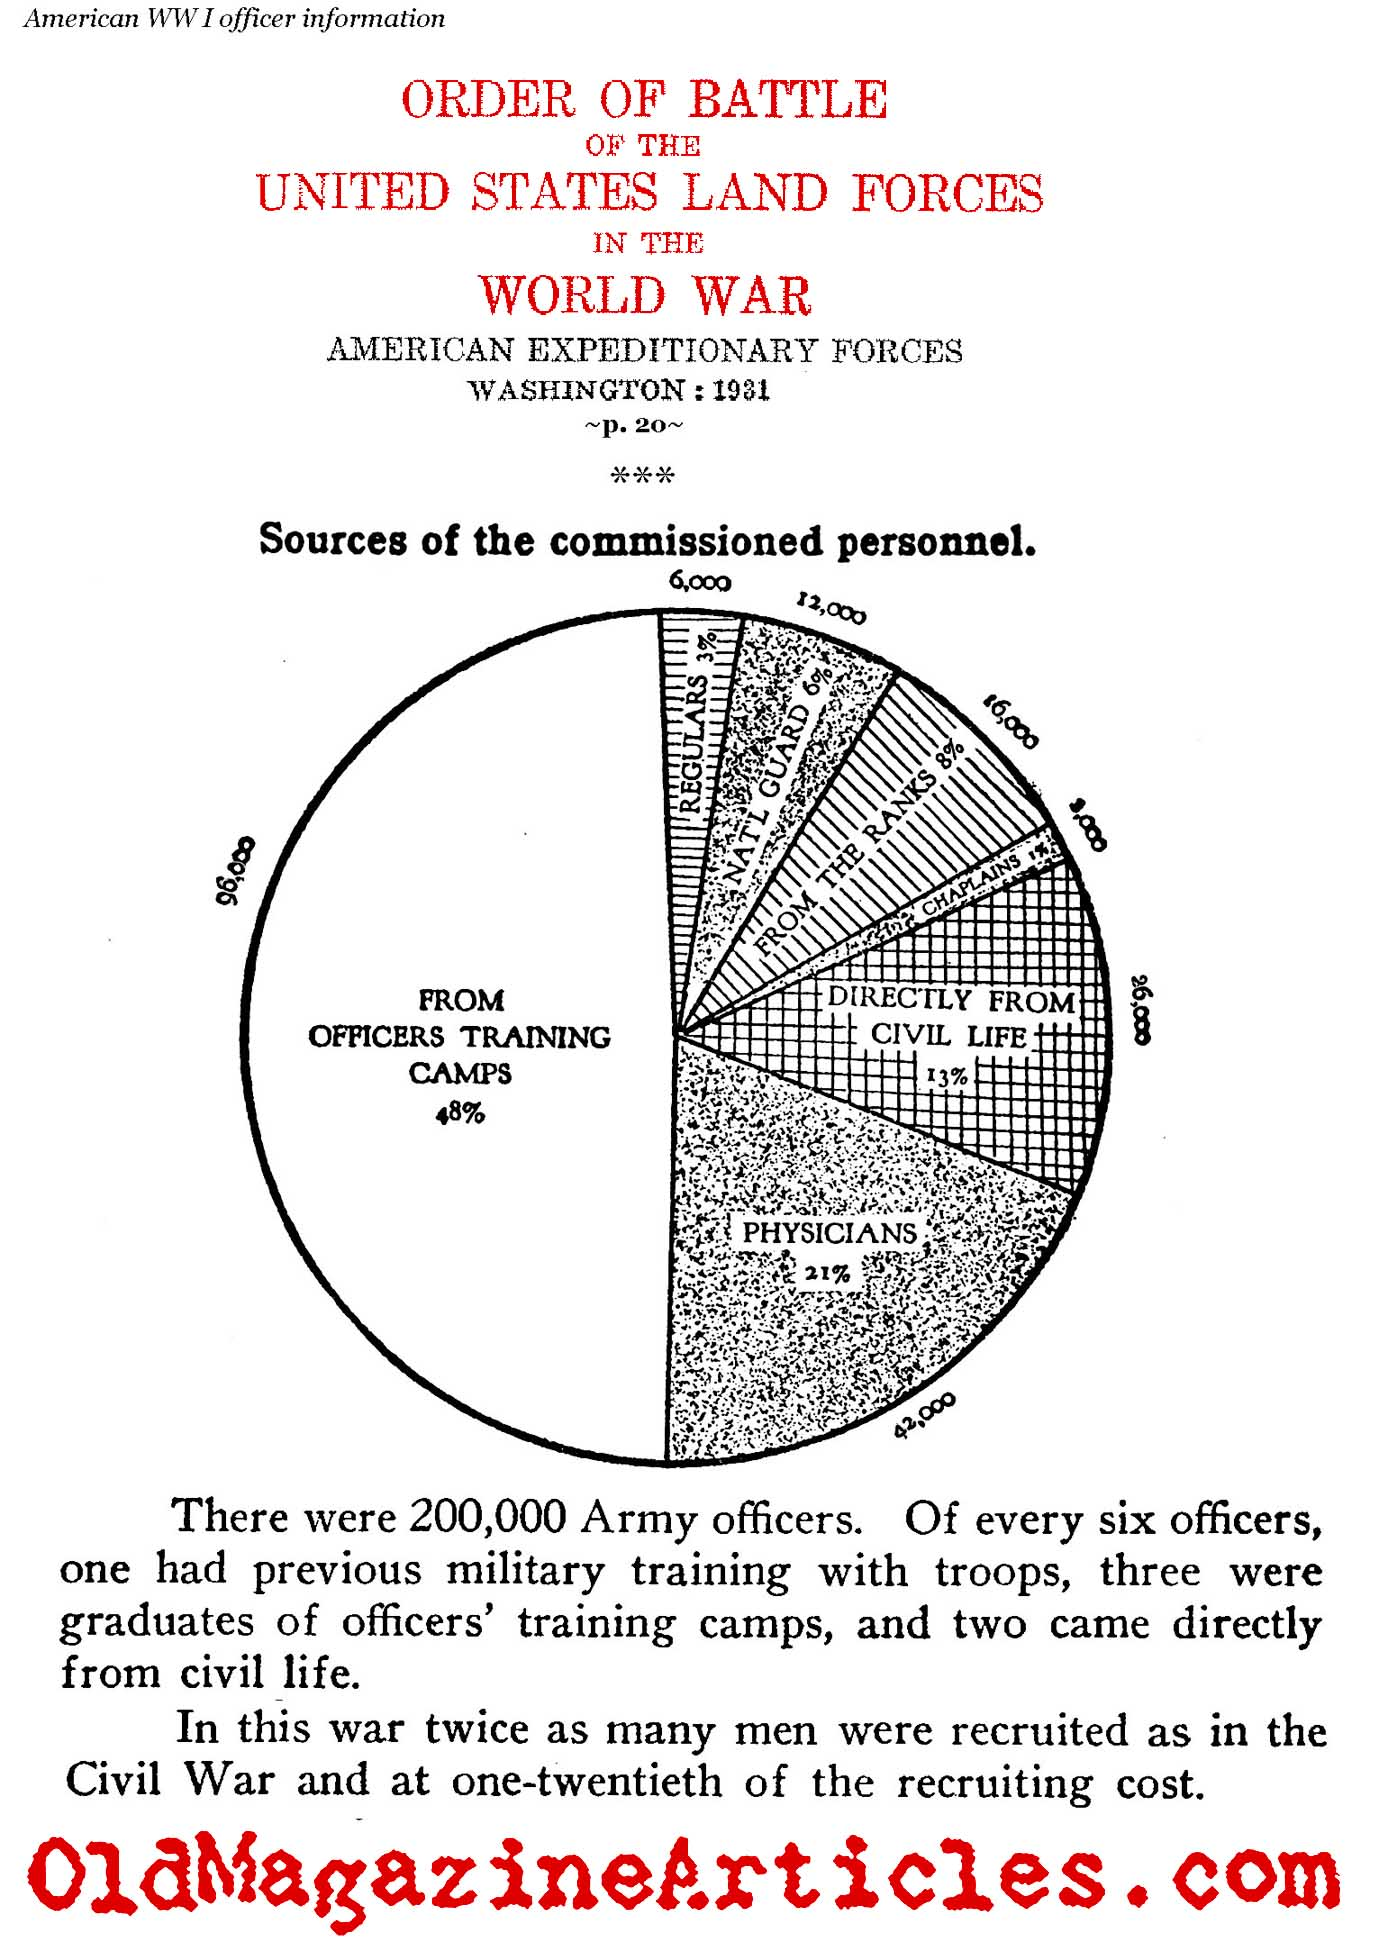 A Study of World War I American Army Officers (U.S. Government Archive, 1931)